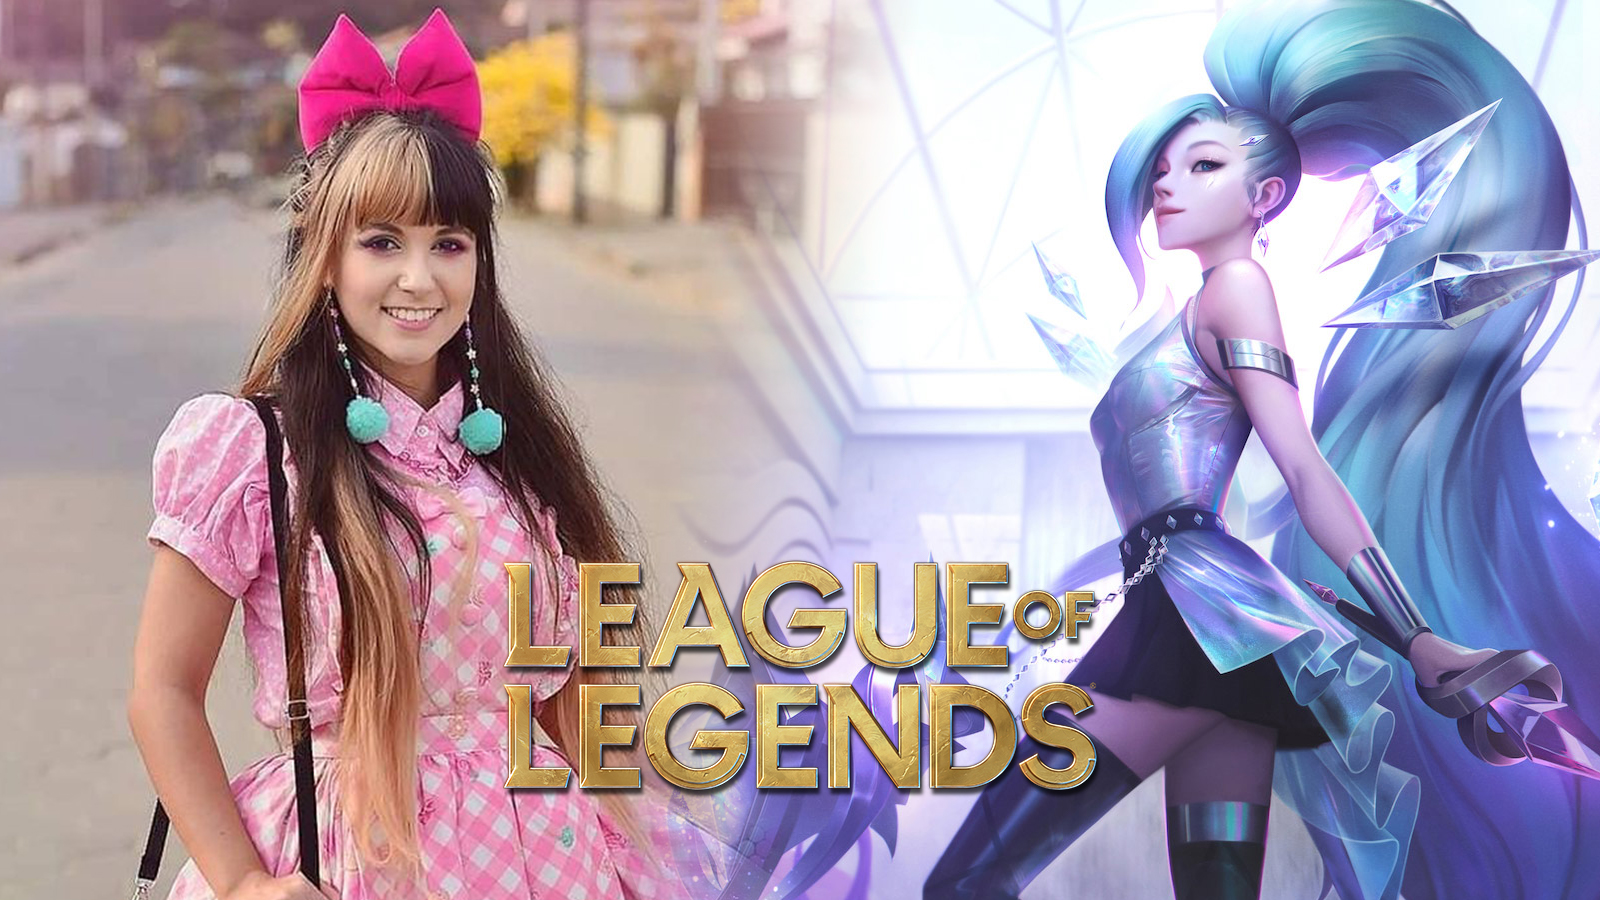 Cosplayer kitsuneraposa next to Seraphine in League of Legends